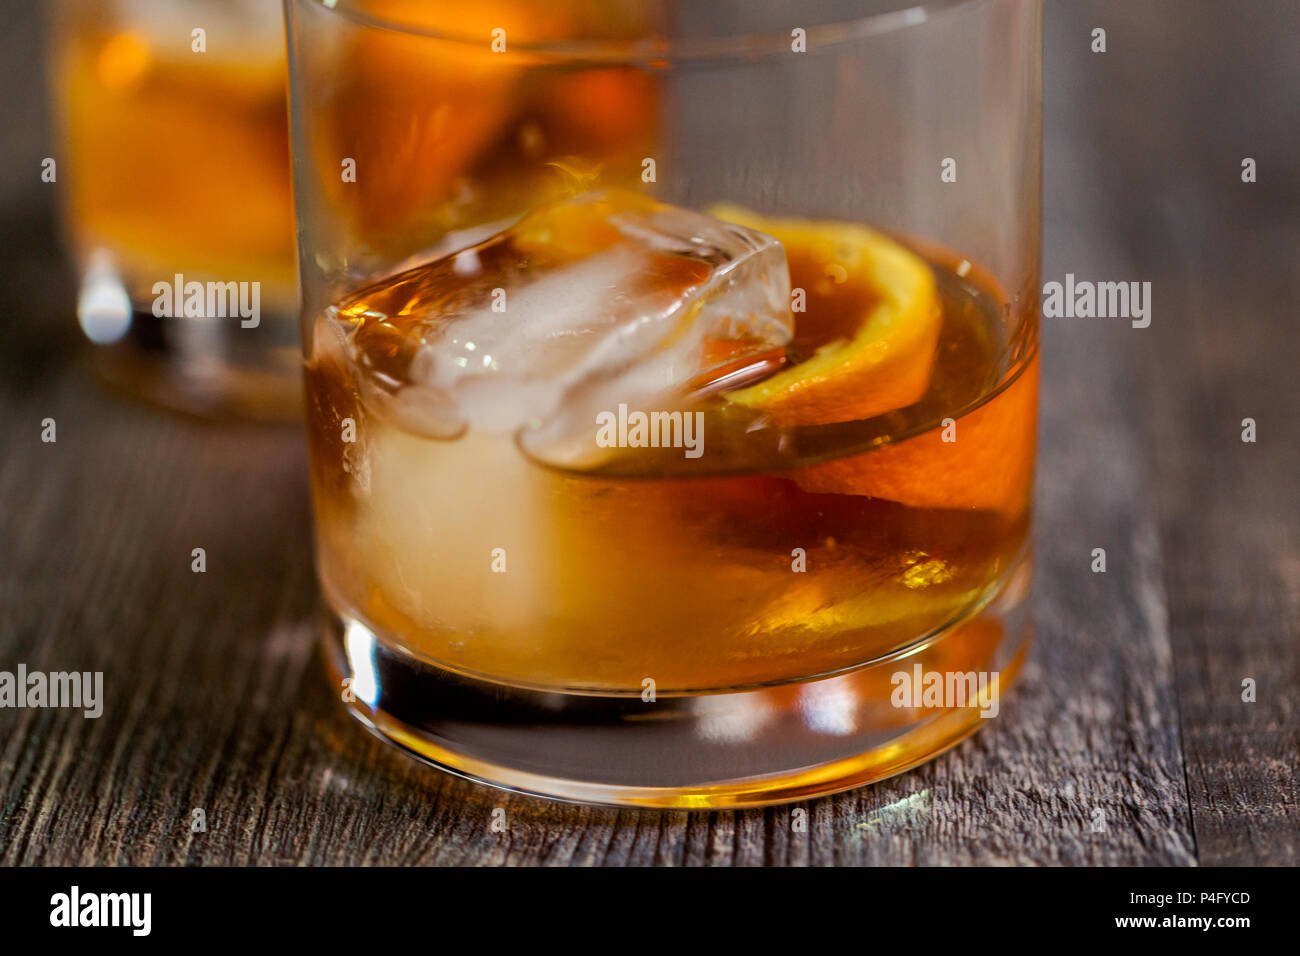 how to cut orange peel for old fashioned